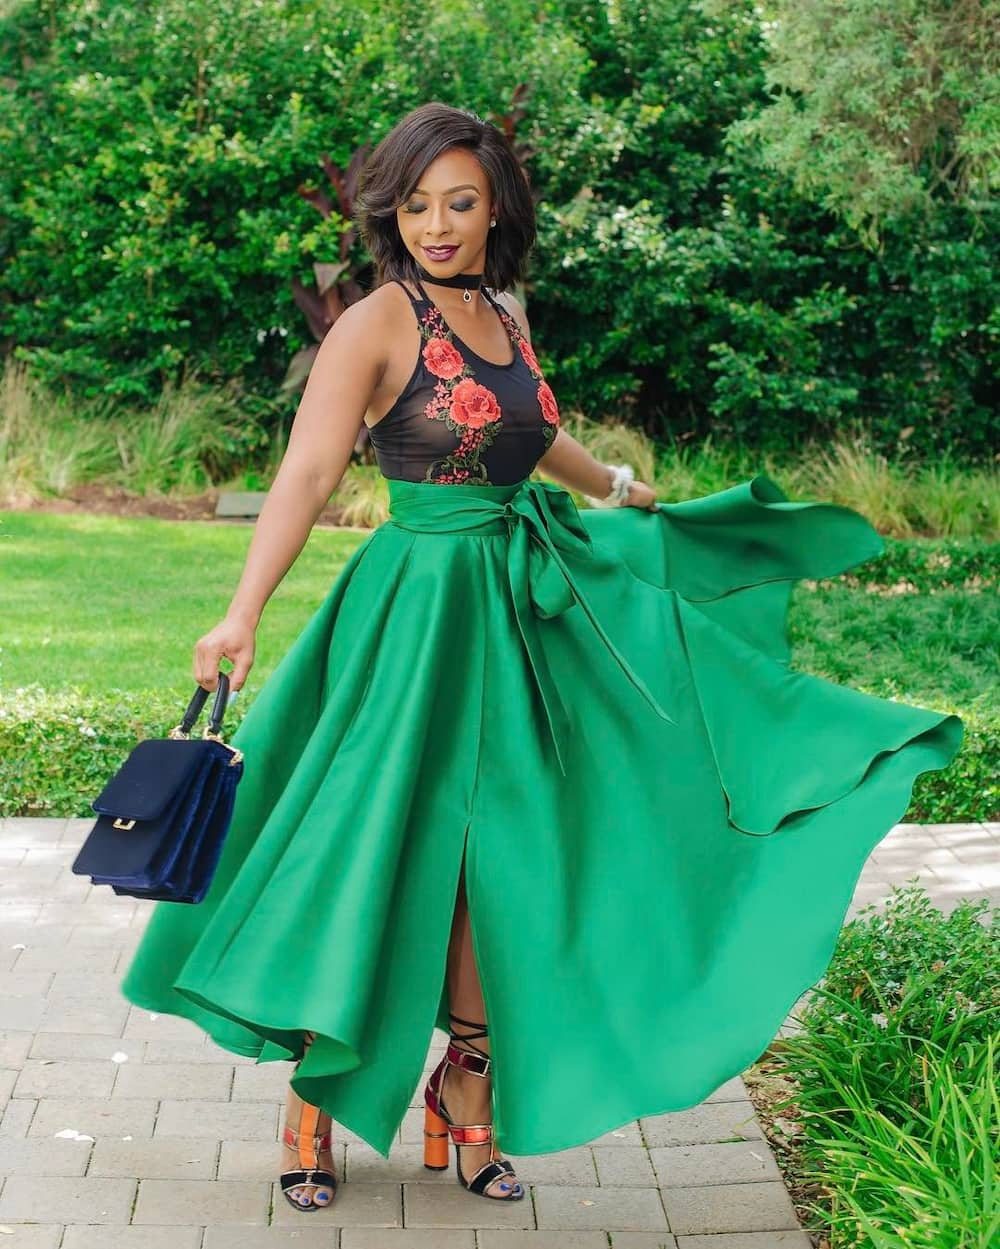 Boity Thulo flaunts her natural beauty serving major skin goals